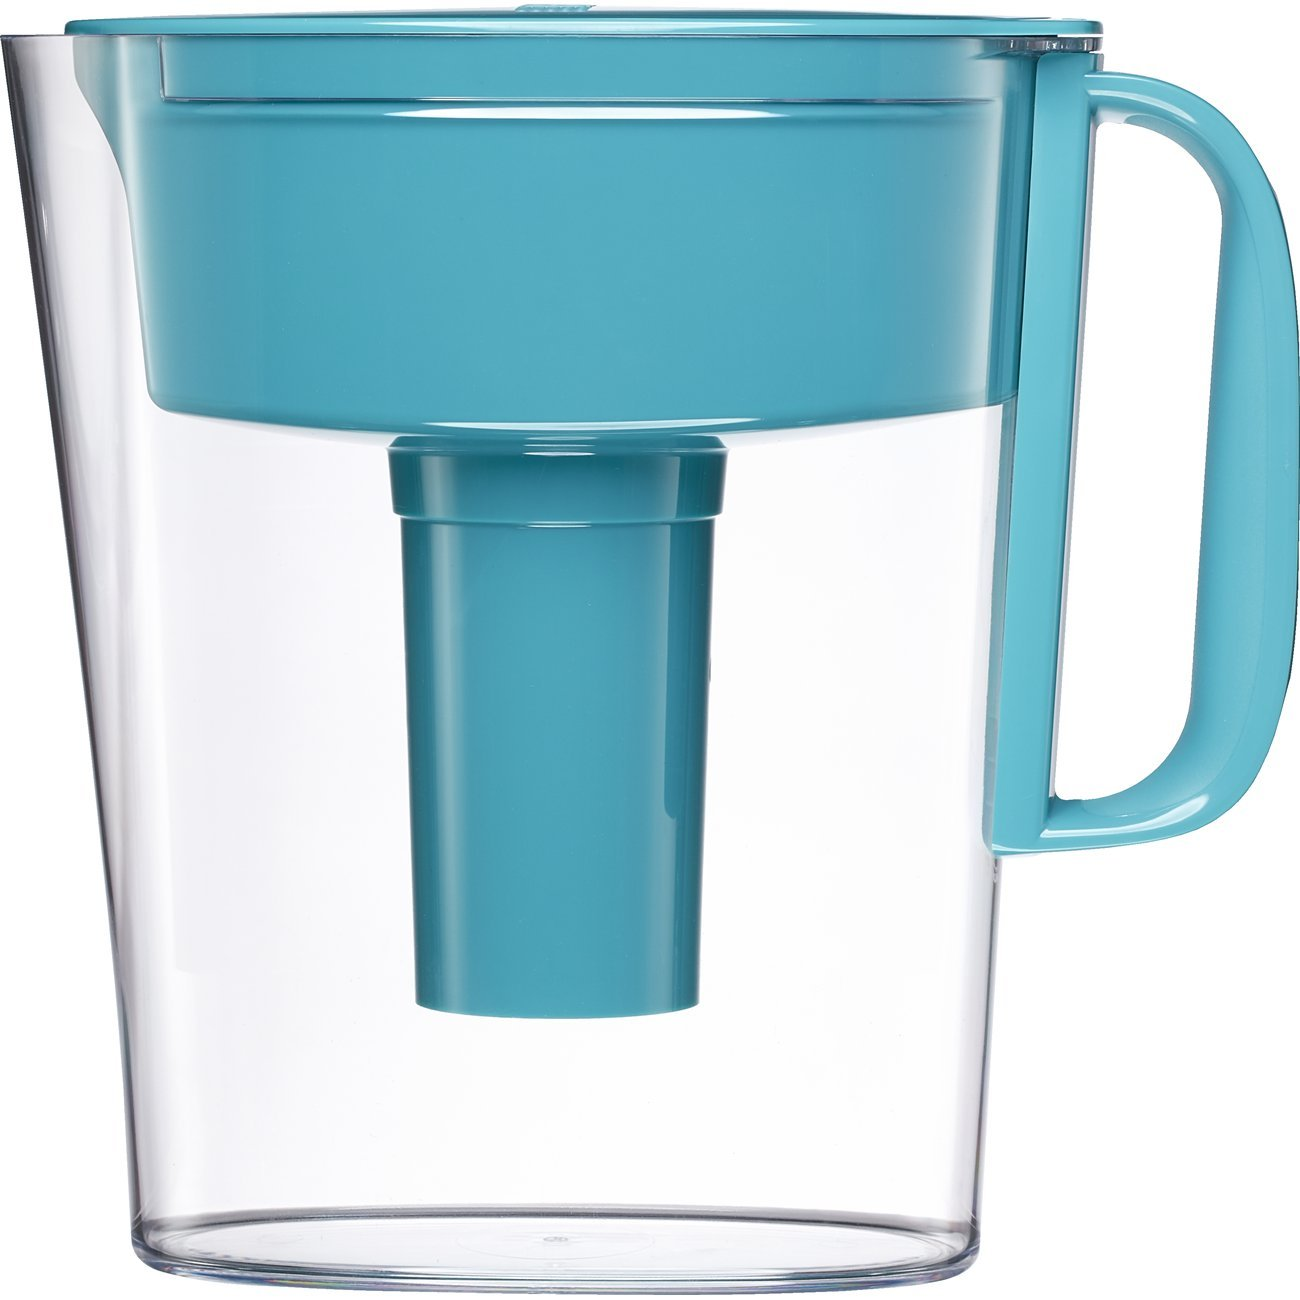 Amazon.com: Brita Small 5 Cup Metro Water Pitcher With Filter   BPA Free    Turquoise: Kitchen U0026 Dining